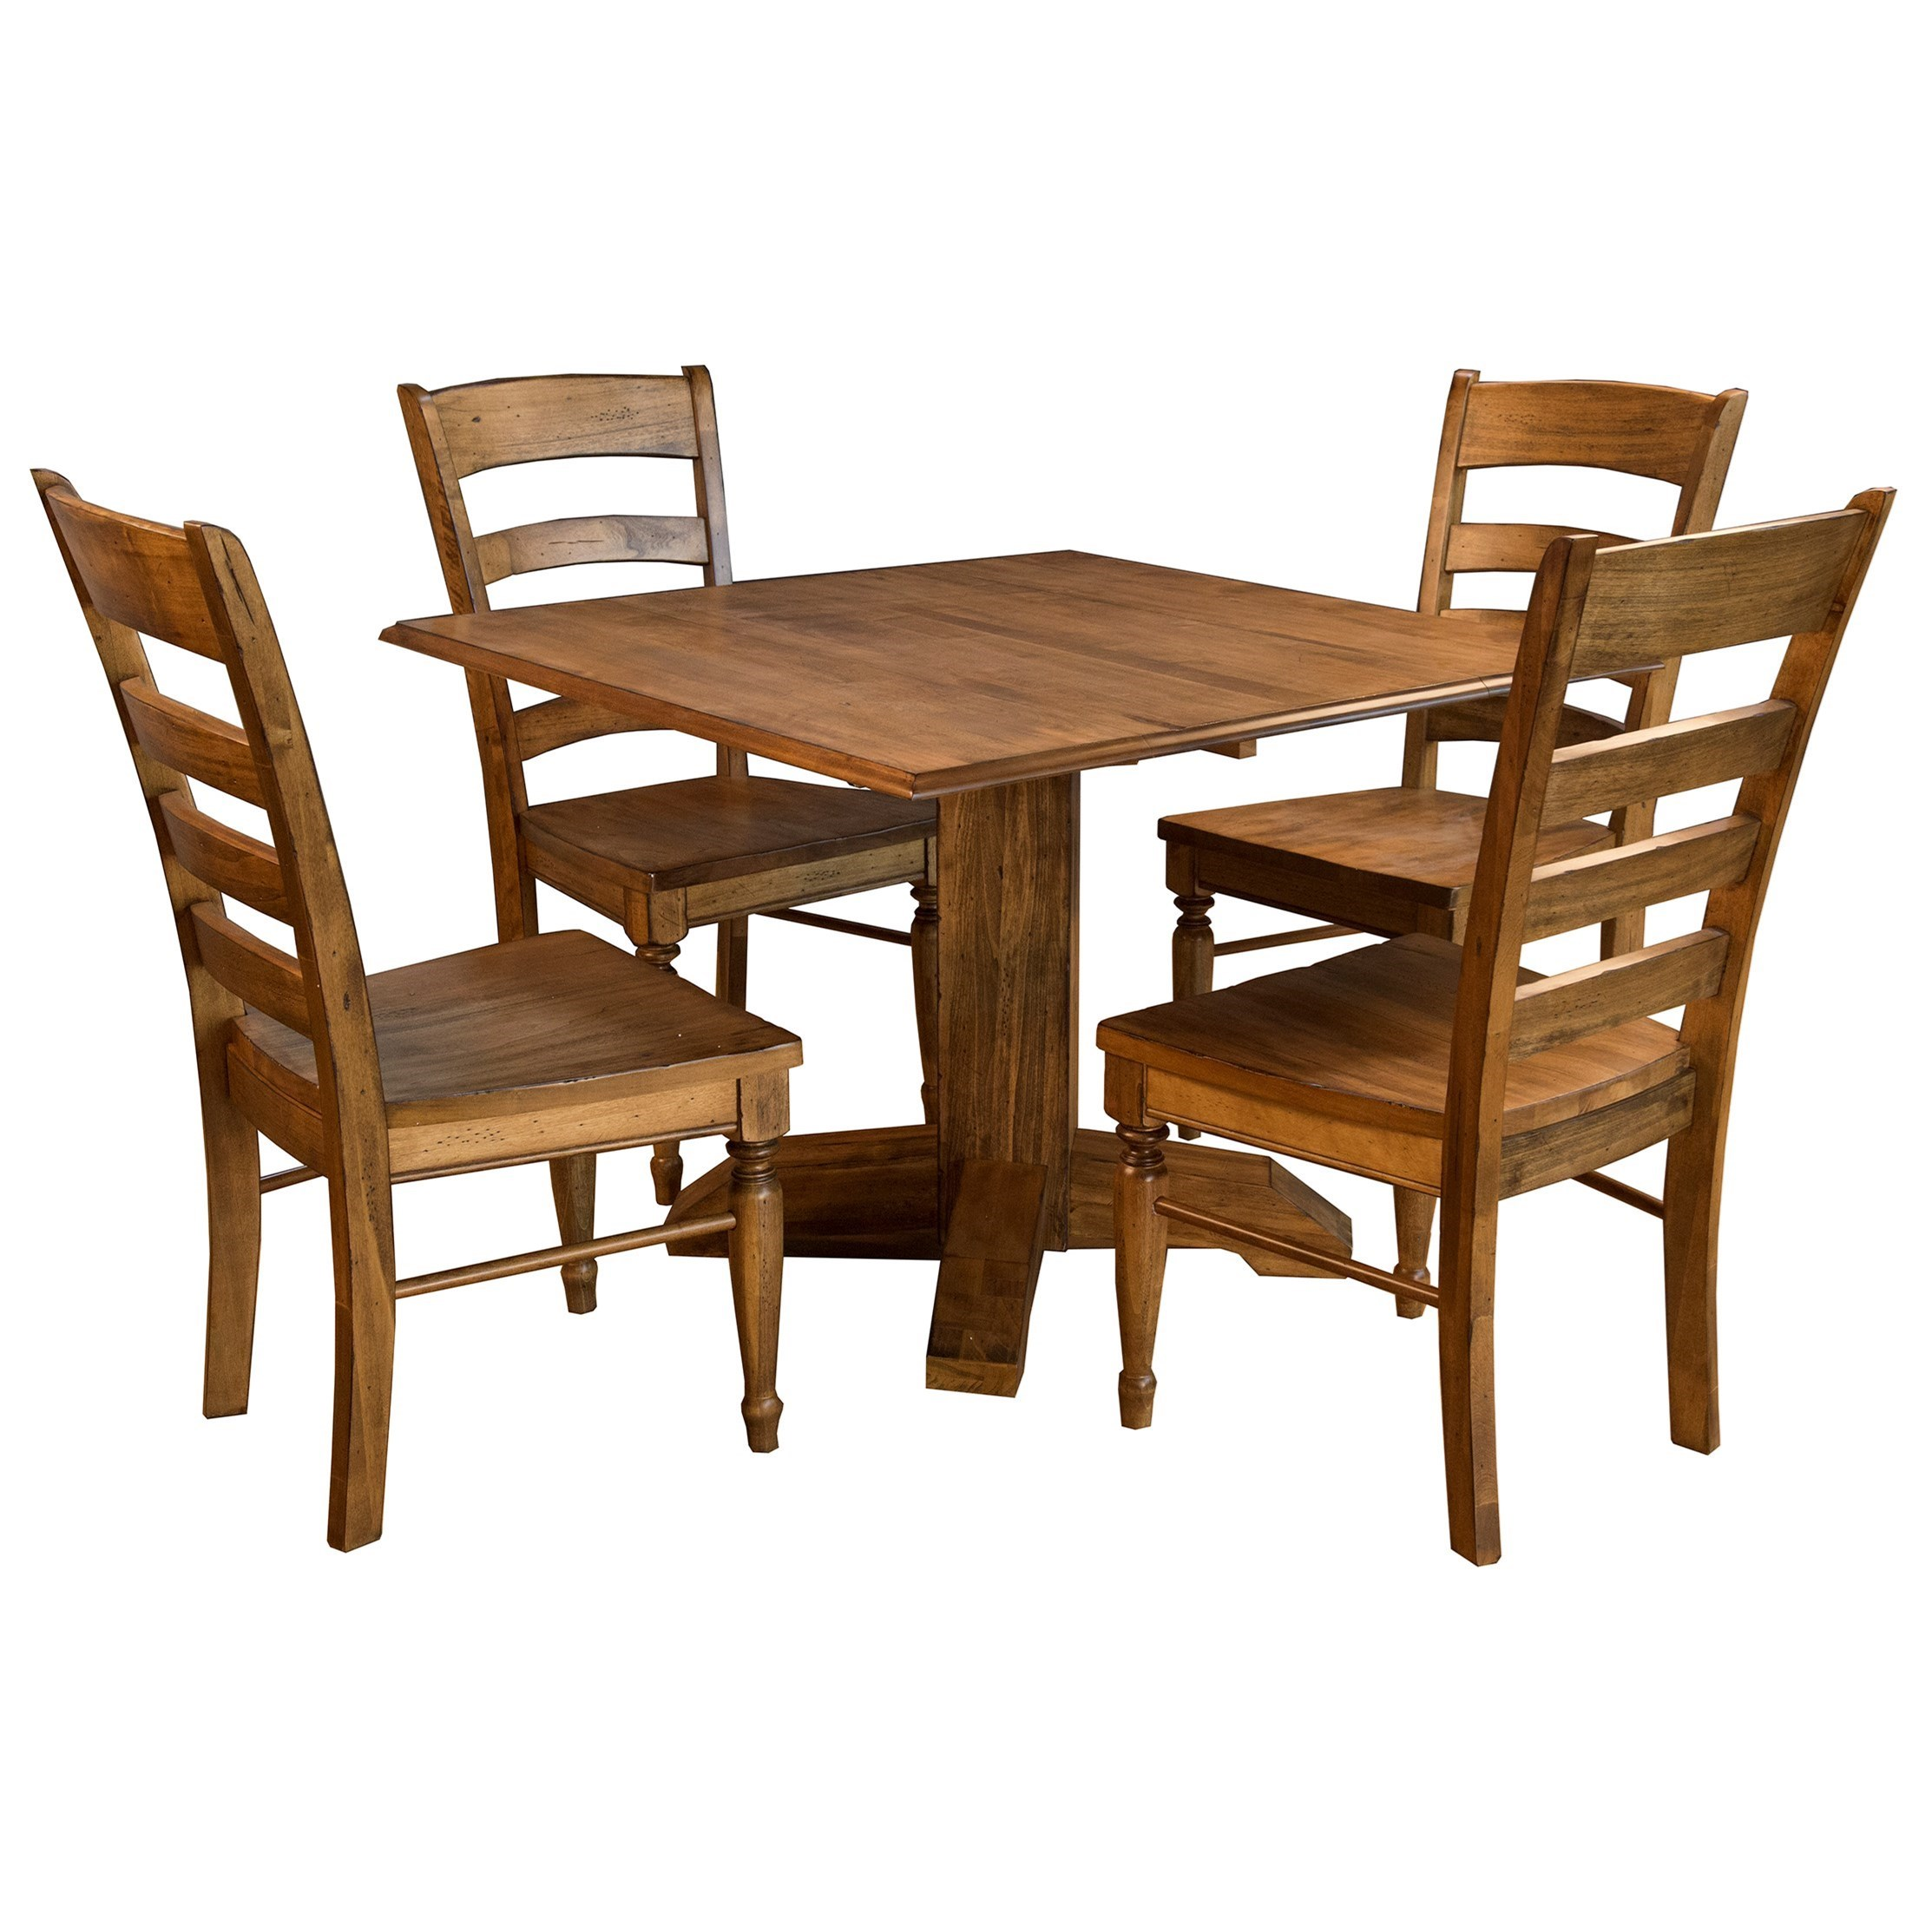 5 Chair Dining Set: AAmerica Bennett 5 Piece Square Drop Dining Set With